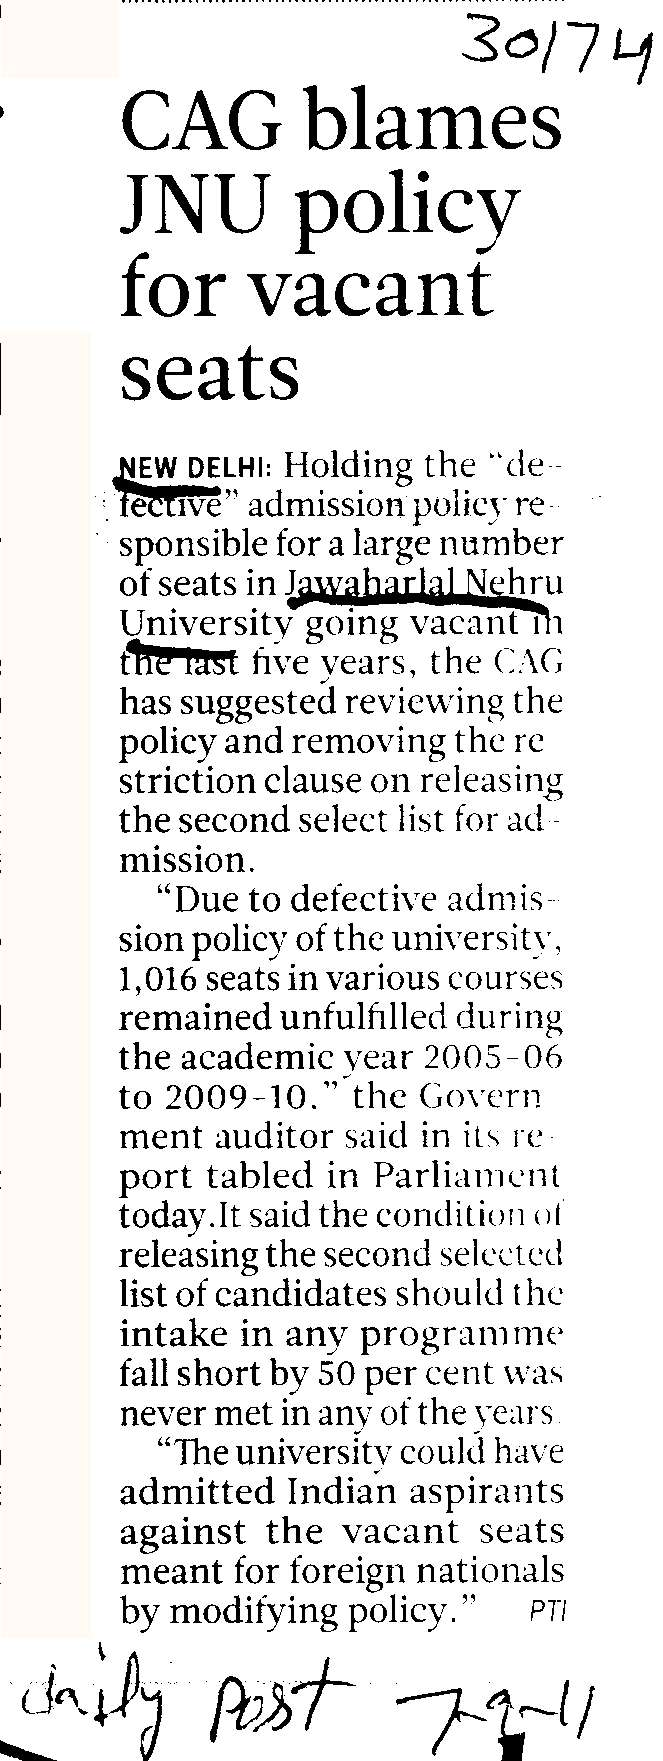 CAG blames JNU policy for vacant seats (Jawaharlal Nehru University)